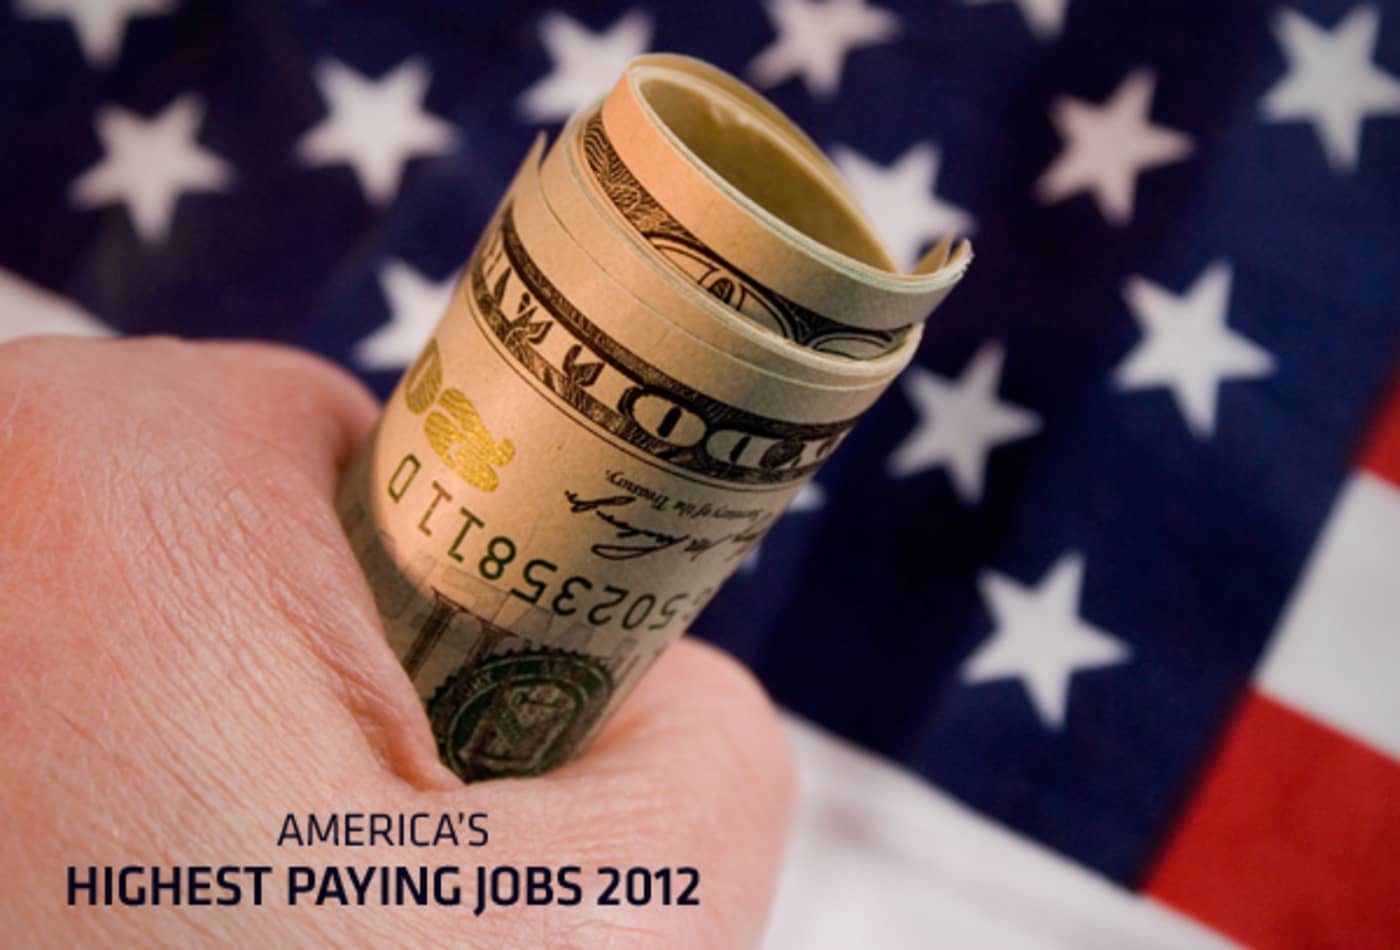 CNBC_americas_highest_paying_jobs-cover-2012.jpg